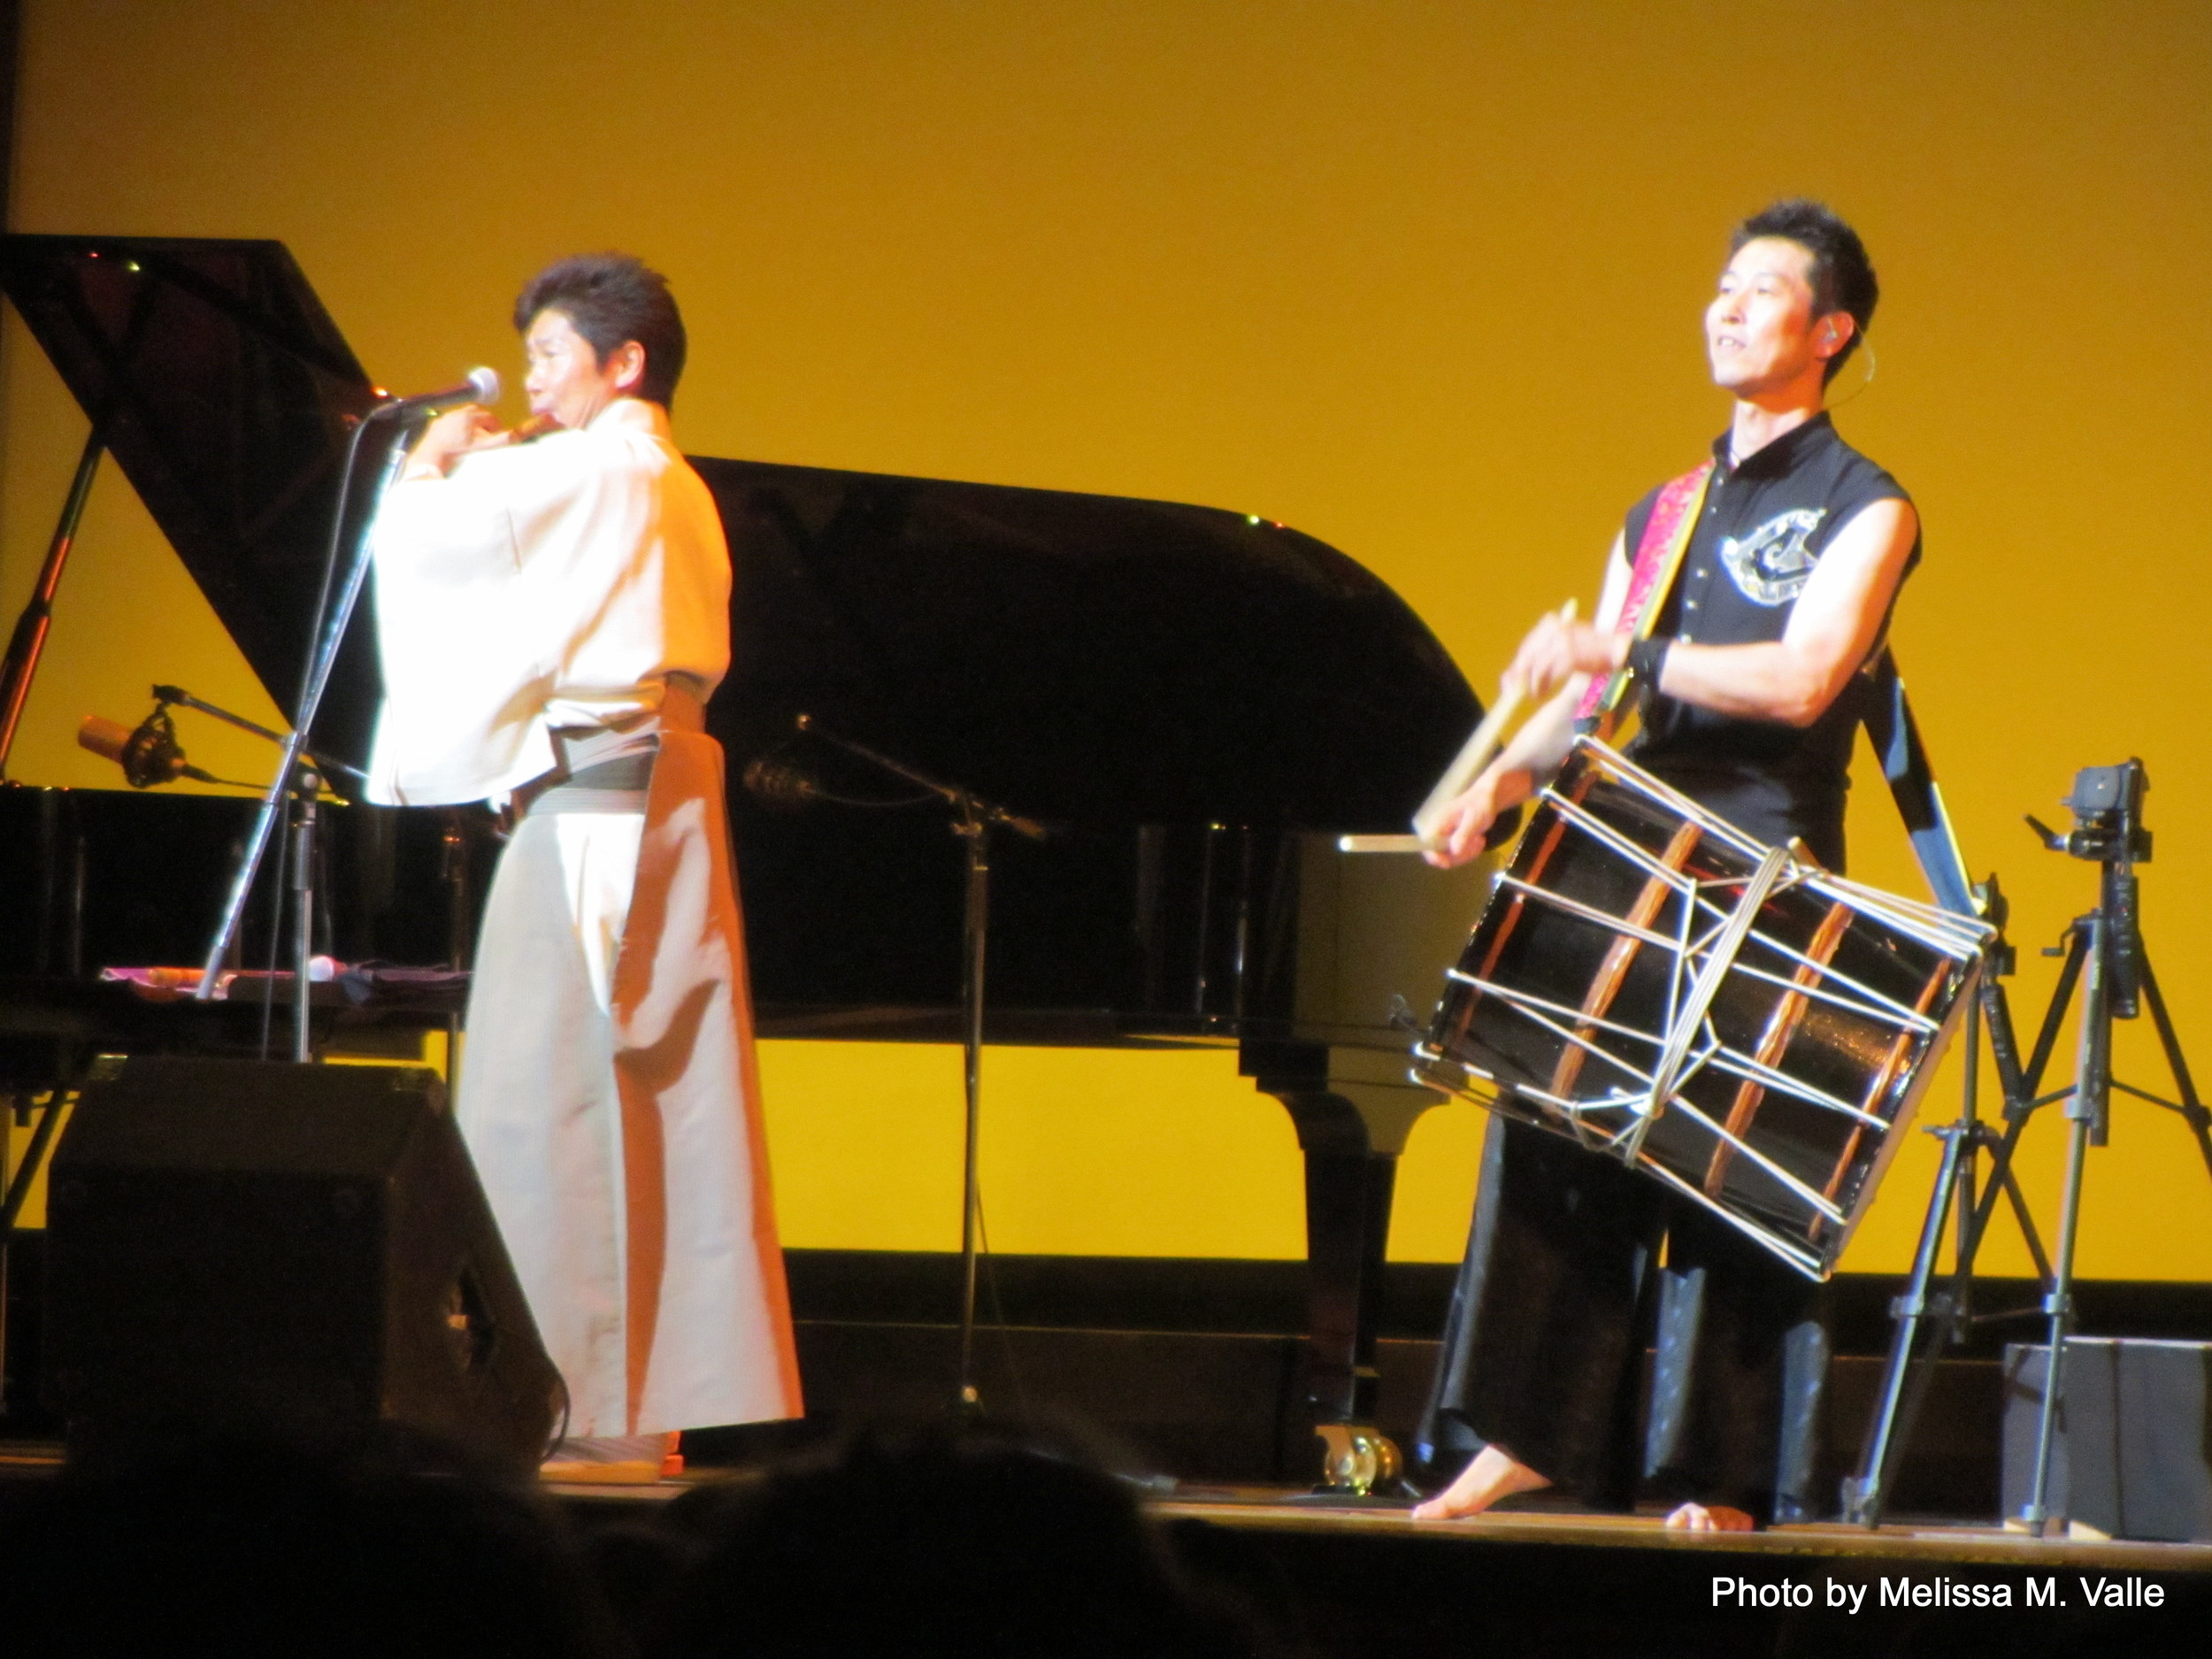 performers at ISA conference in Yokohama, Japan